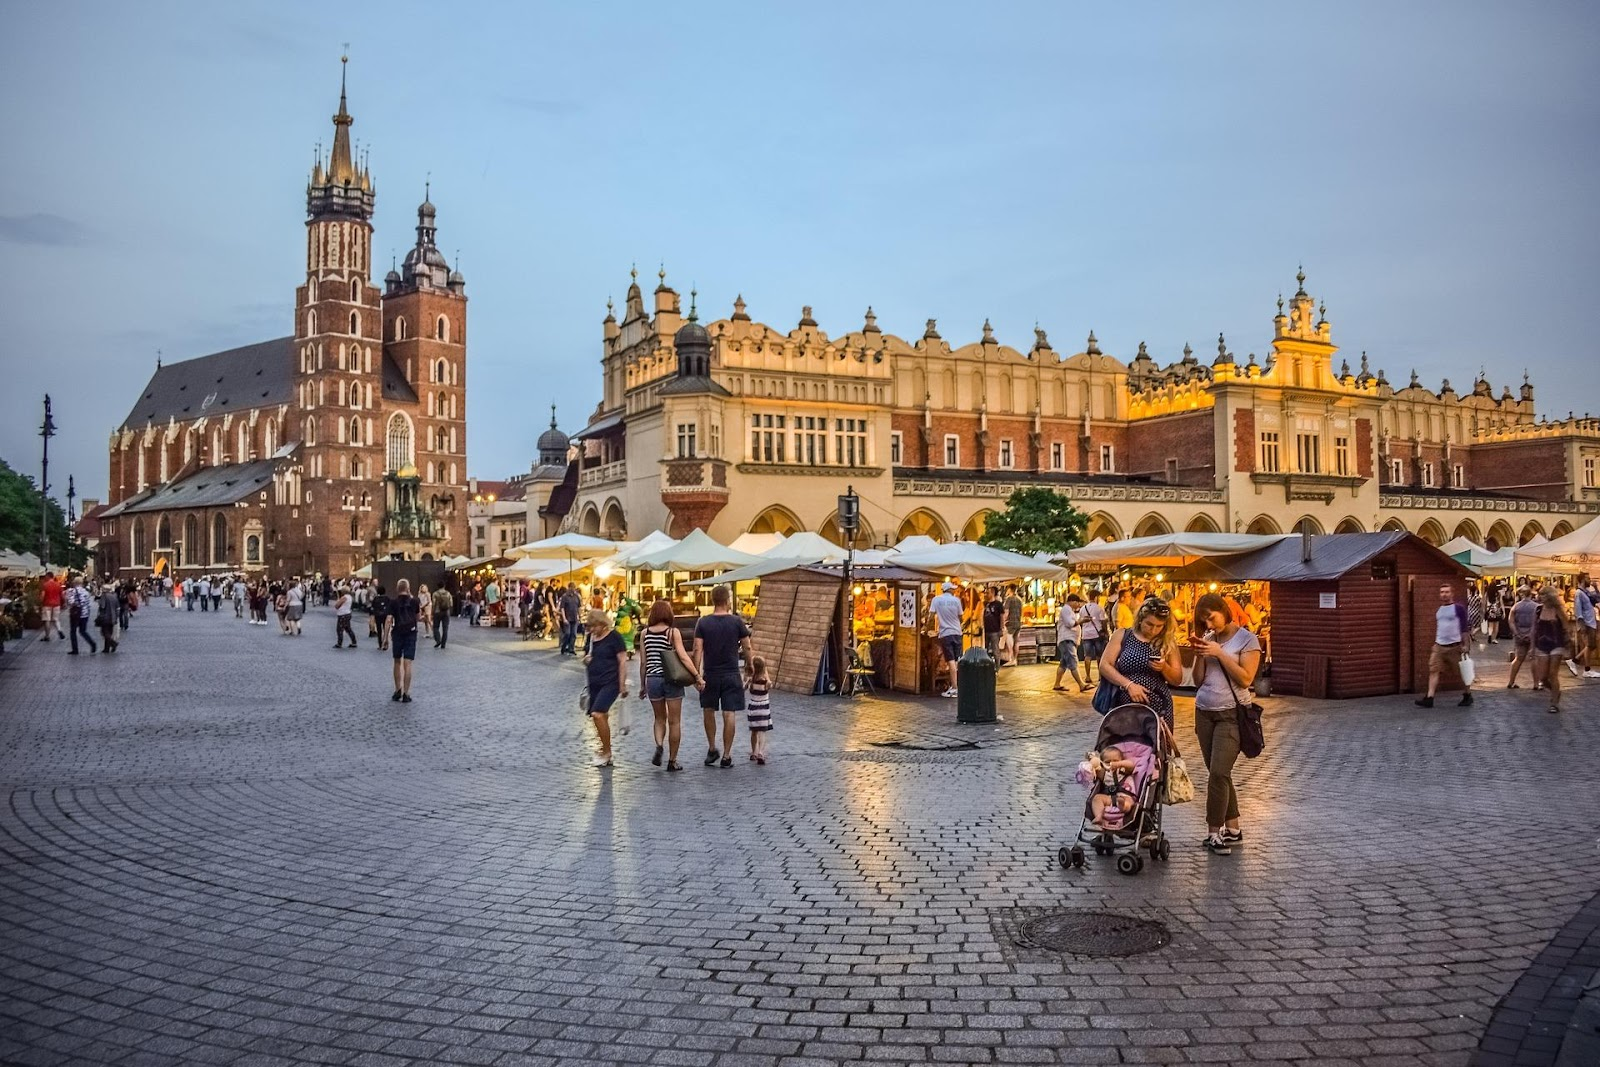 krakow main market square touristic market and tourists basilica in background during sunset